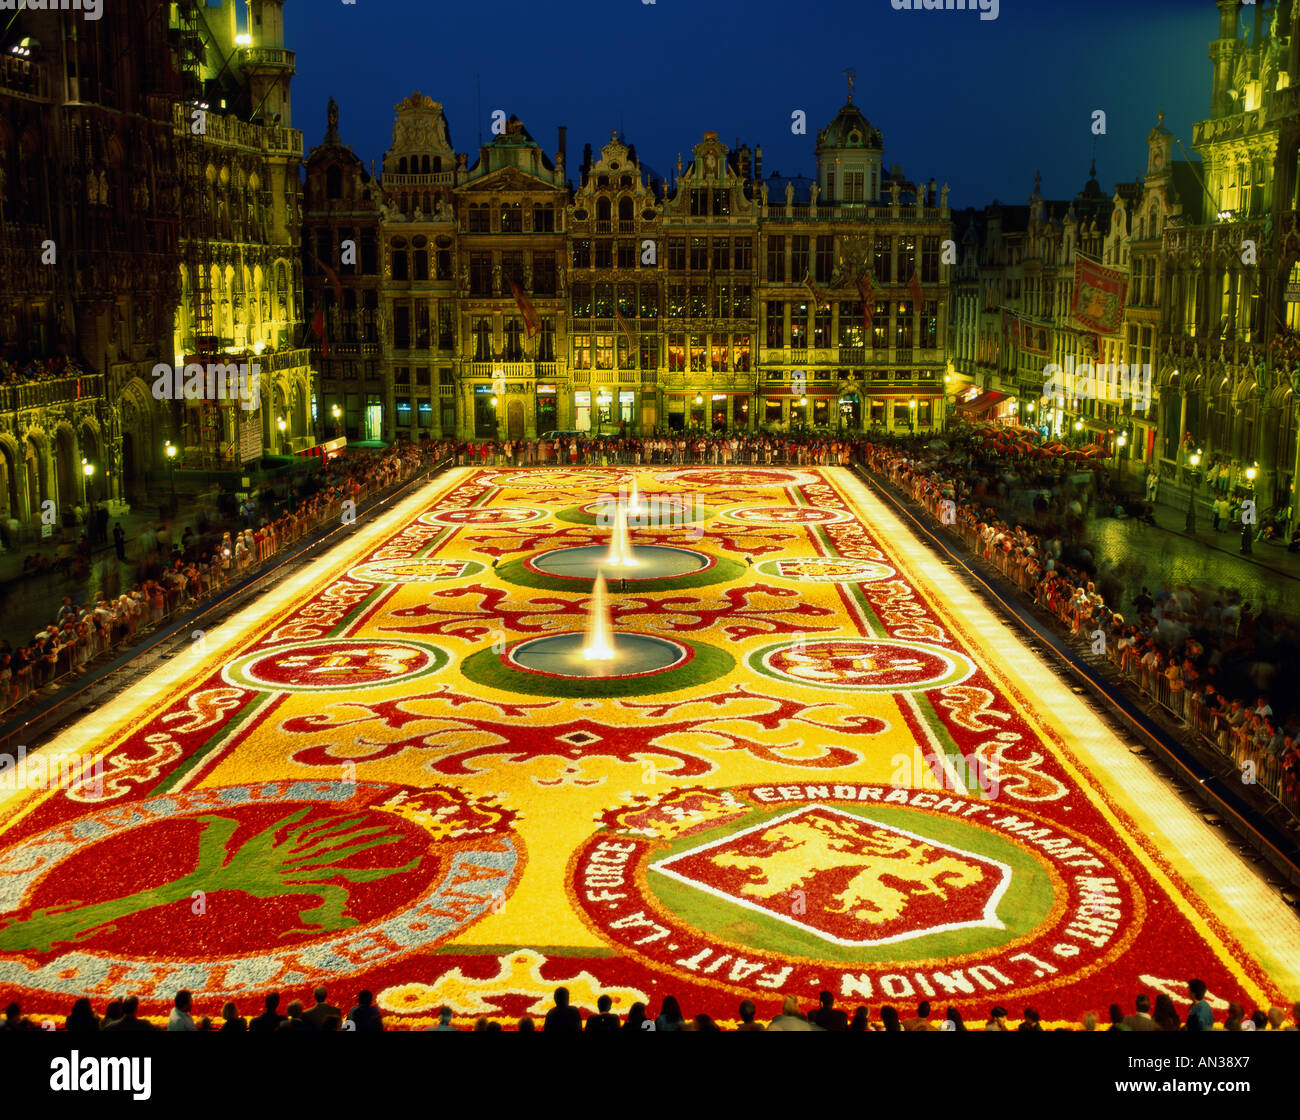 grand place floral carpet tapis des fleurs night view stock photo royalty free image. Black Bedroom Furniture Sets. Home Design Ideas